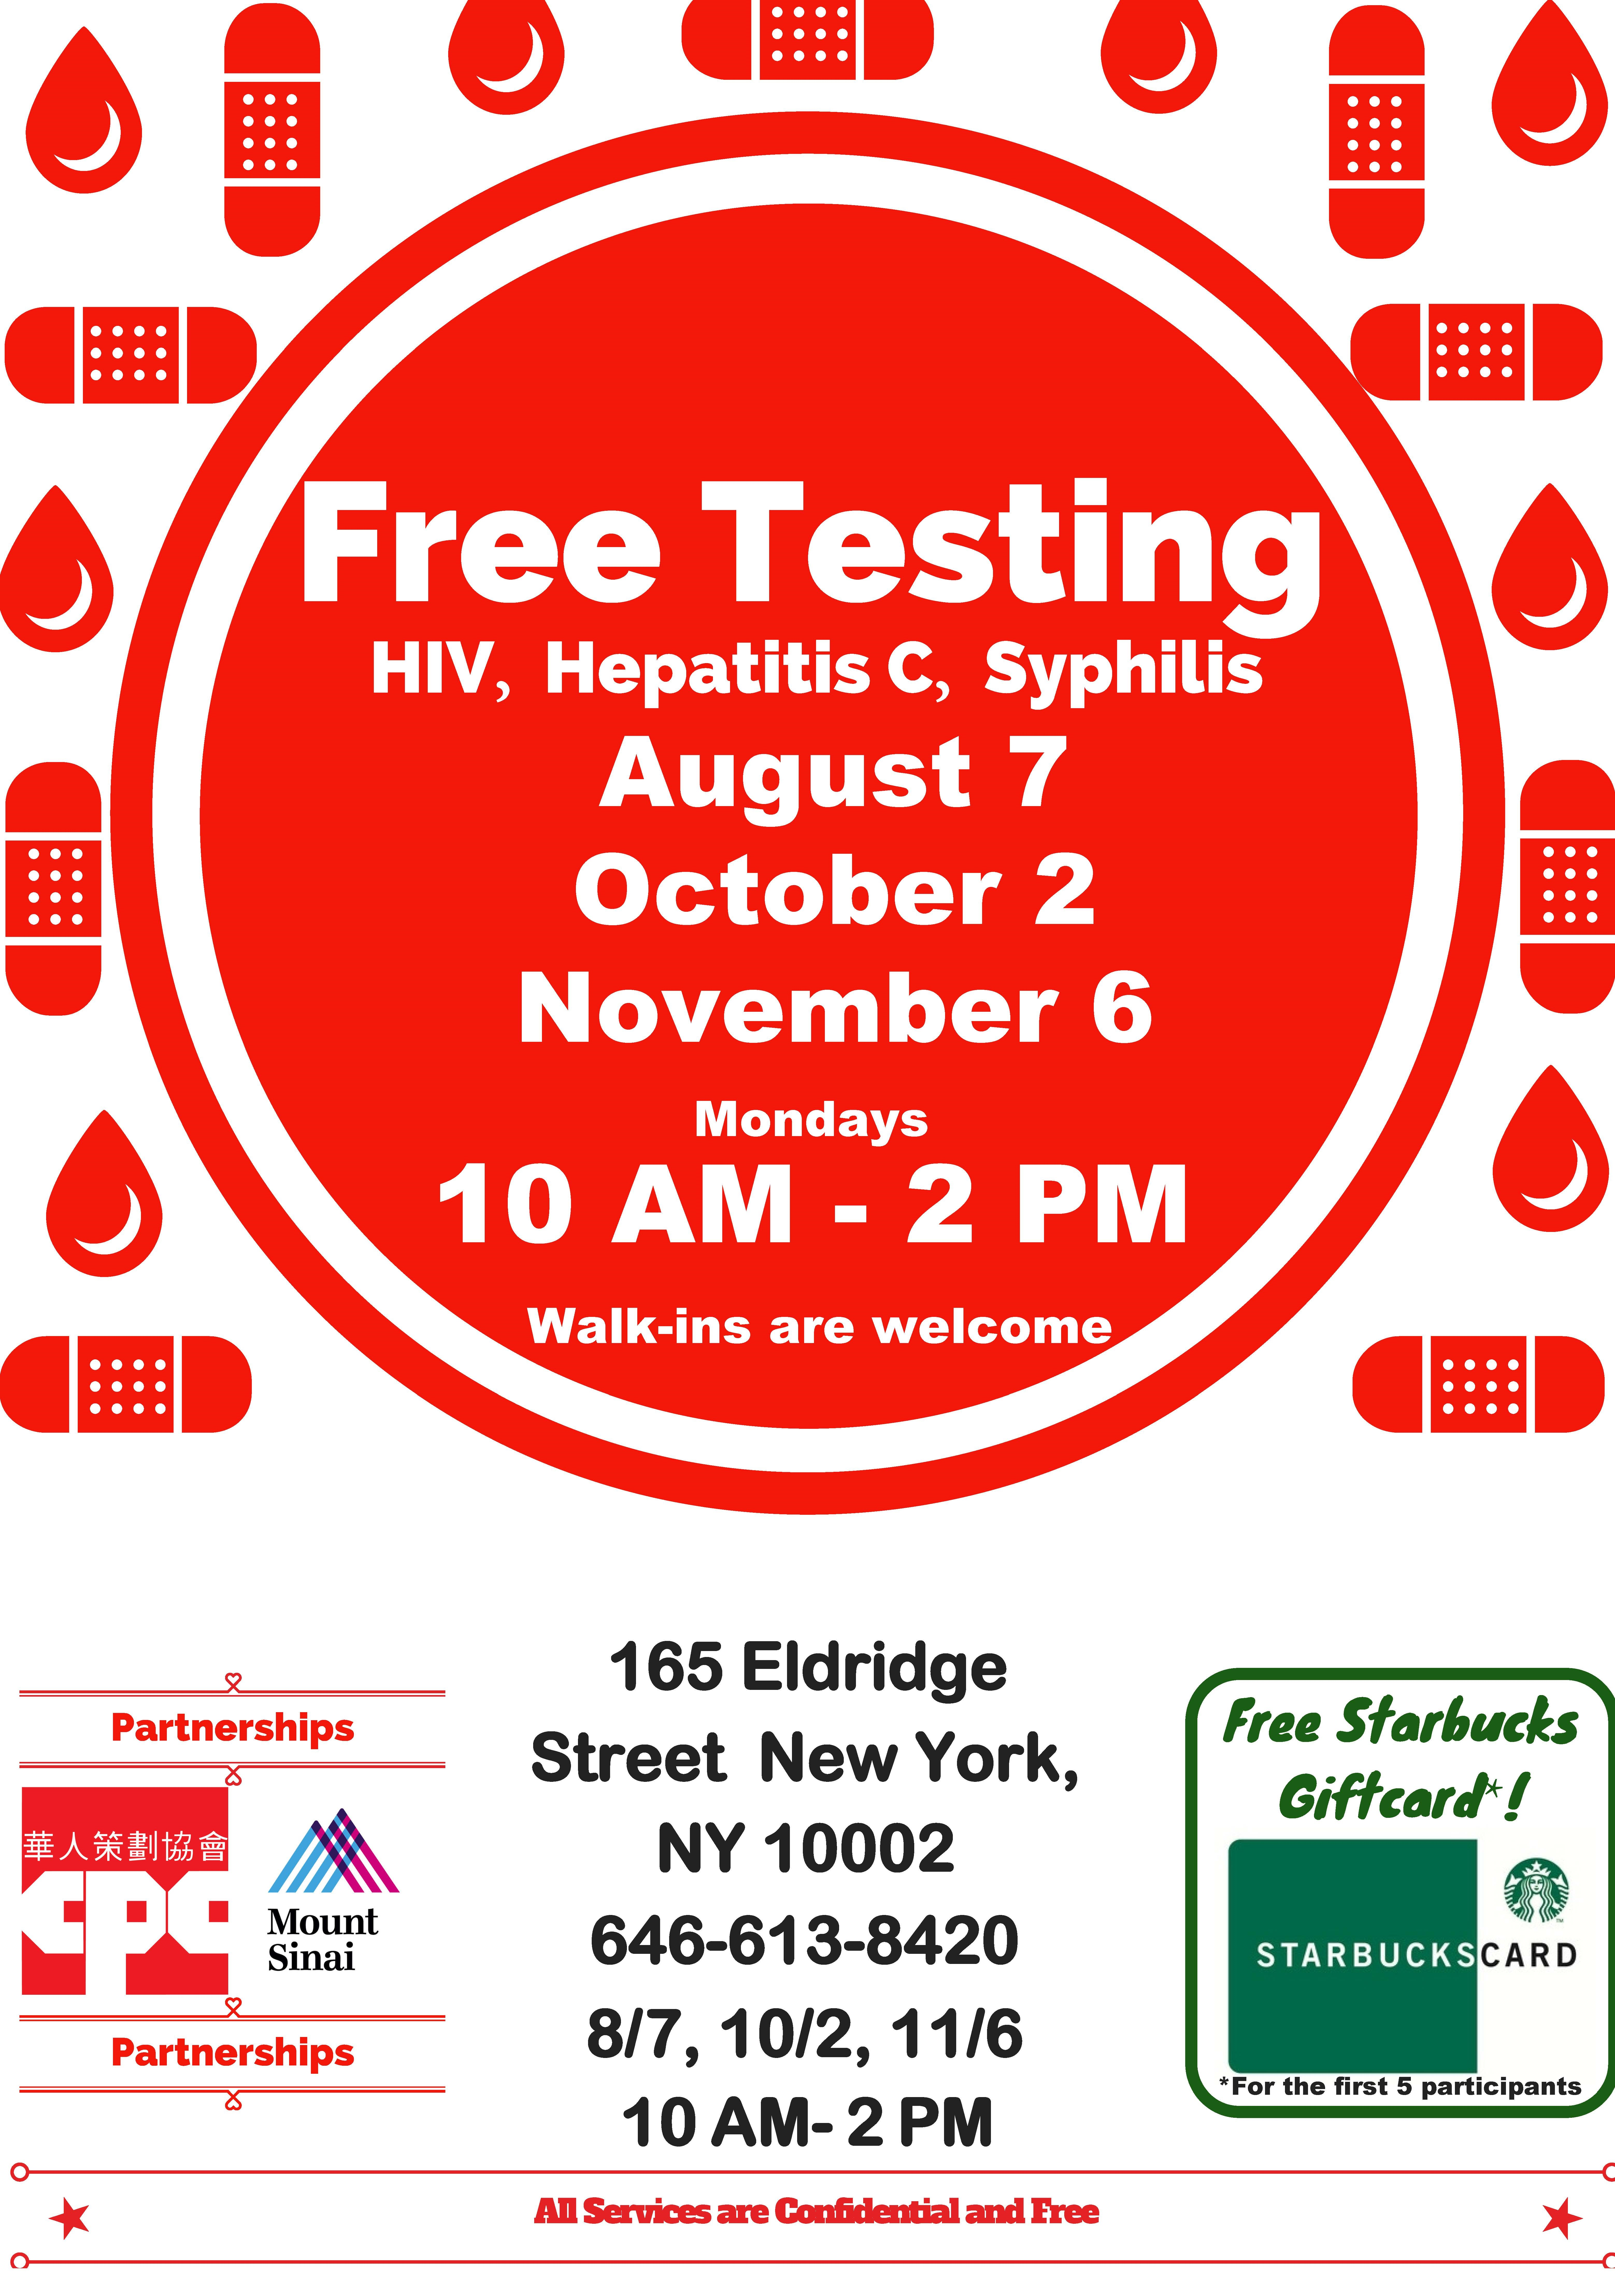 HIV/AIDS Services free HIV, Hepatitis C, and Syphilis Testing